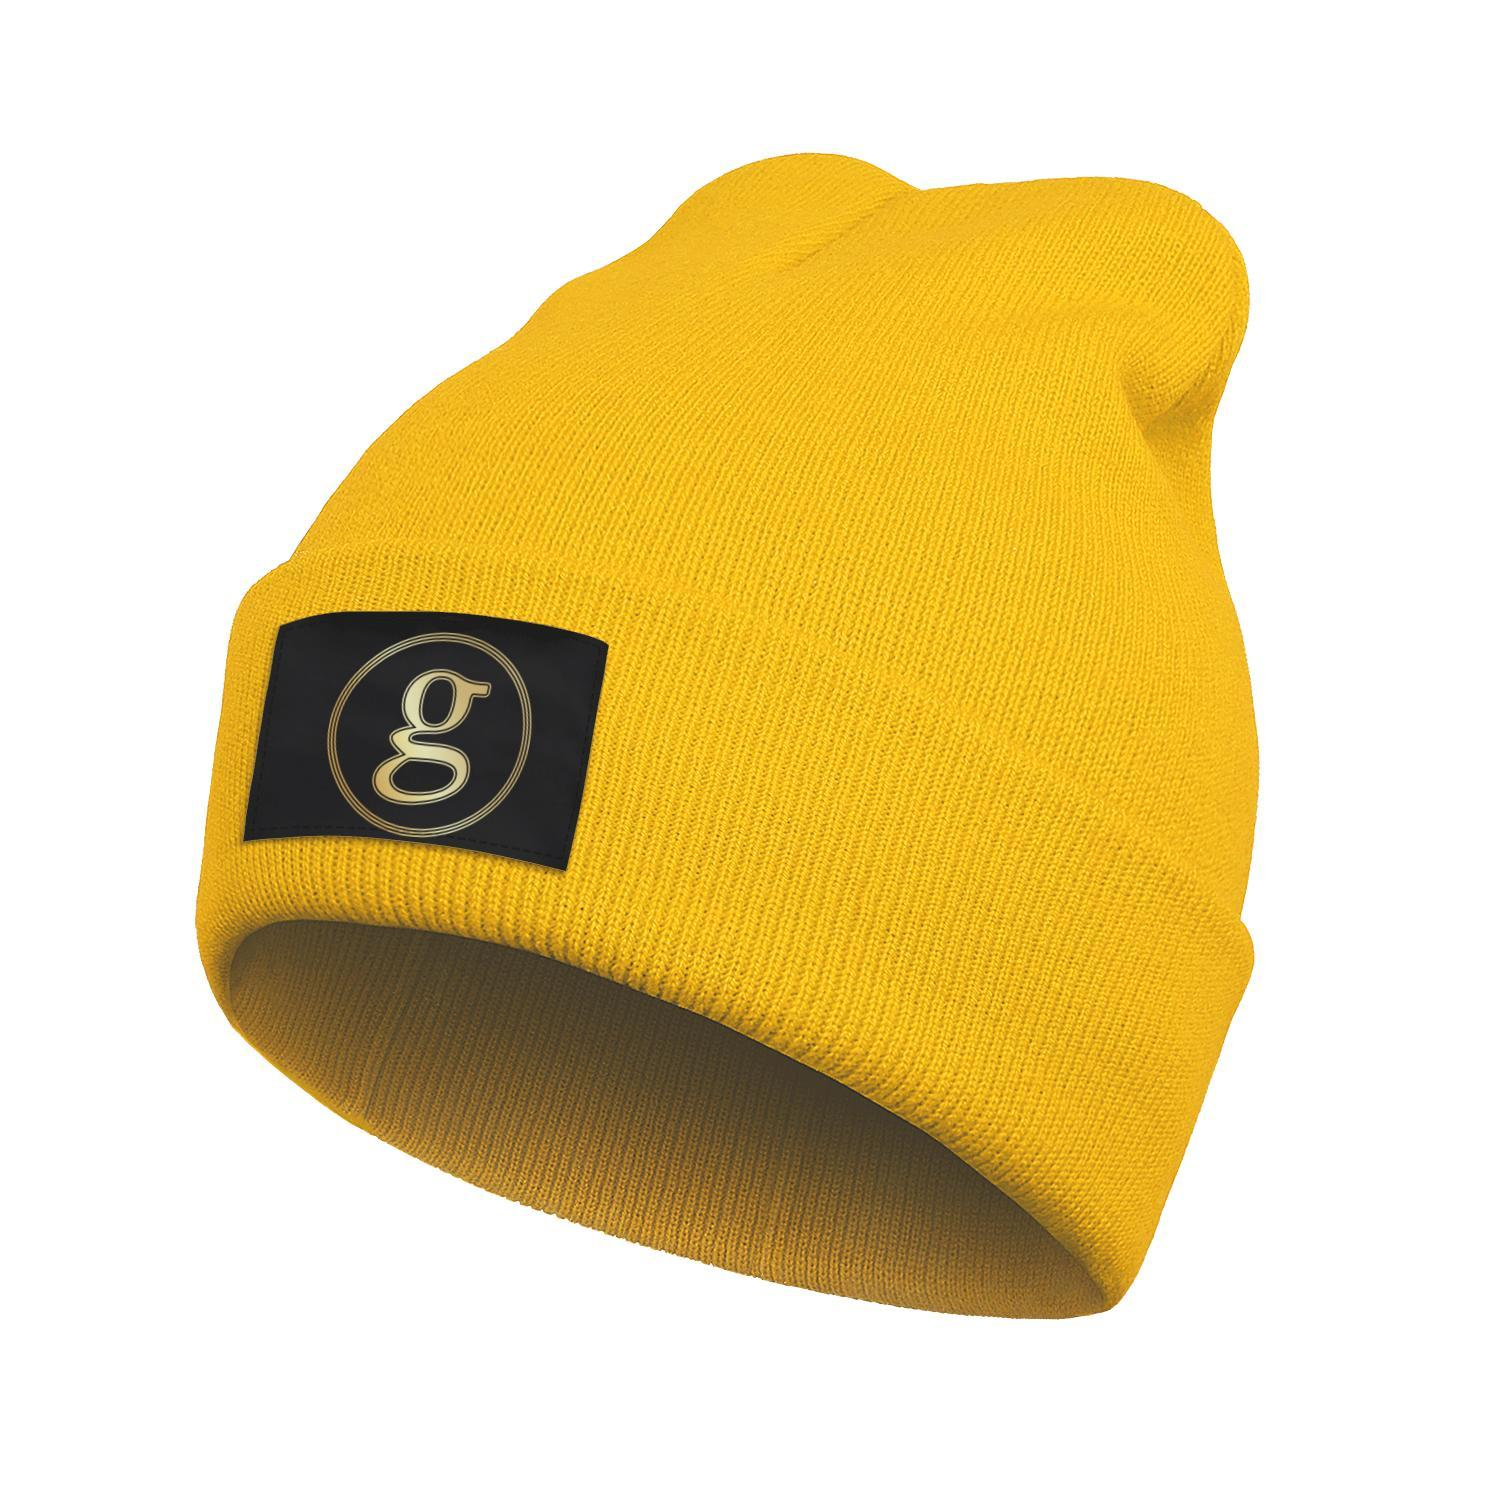 Mens Women Fashion Beanie Skull Hats Garth Brooks Double Live Gold Slouchy crochet Knitted Cap Gray Distressed